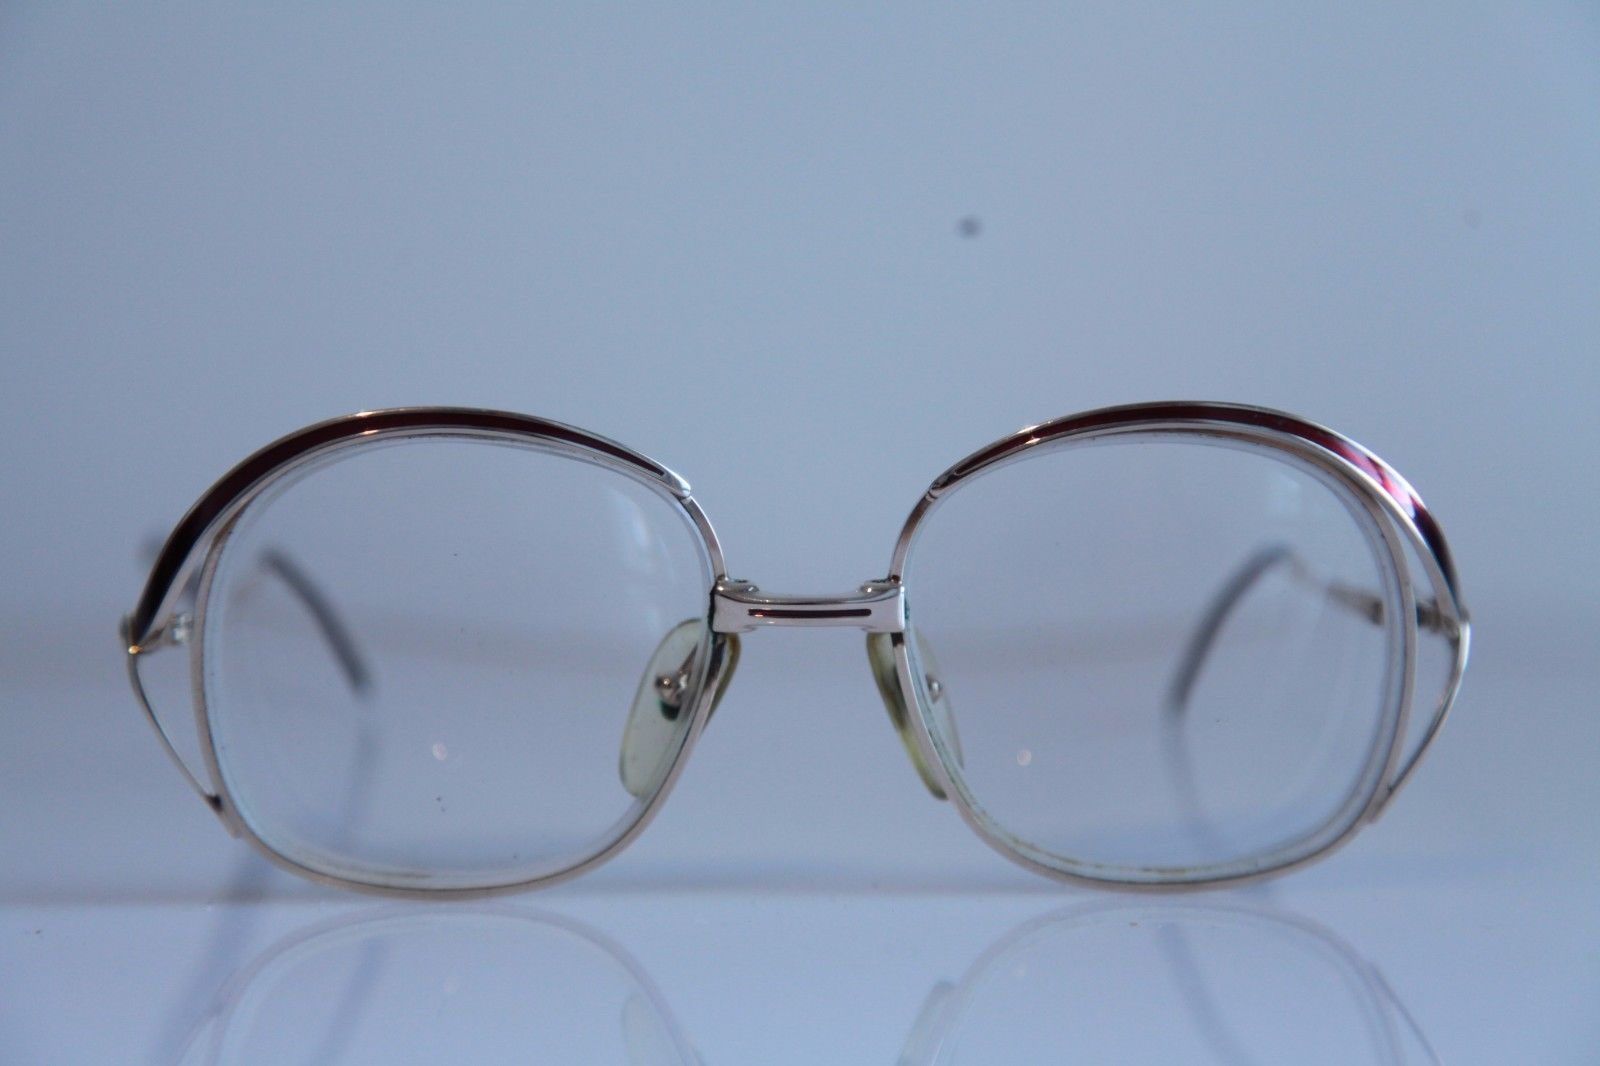 Vintage CHRISTIAN DIOR Eyewear, Gold Frame,  RX-Able Prescription lens. Austria